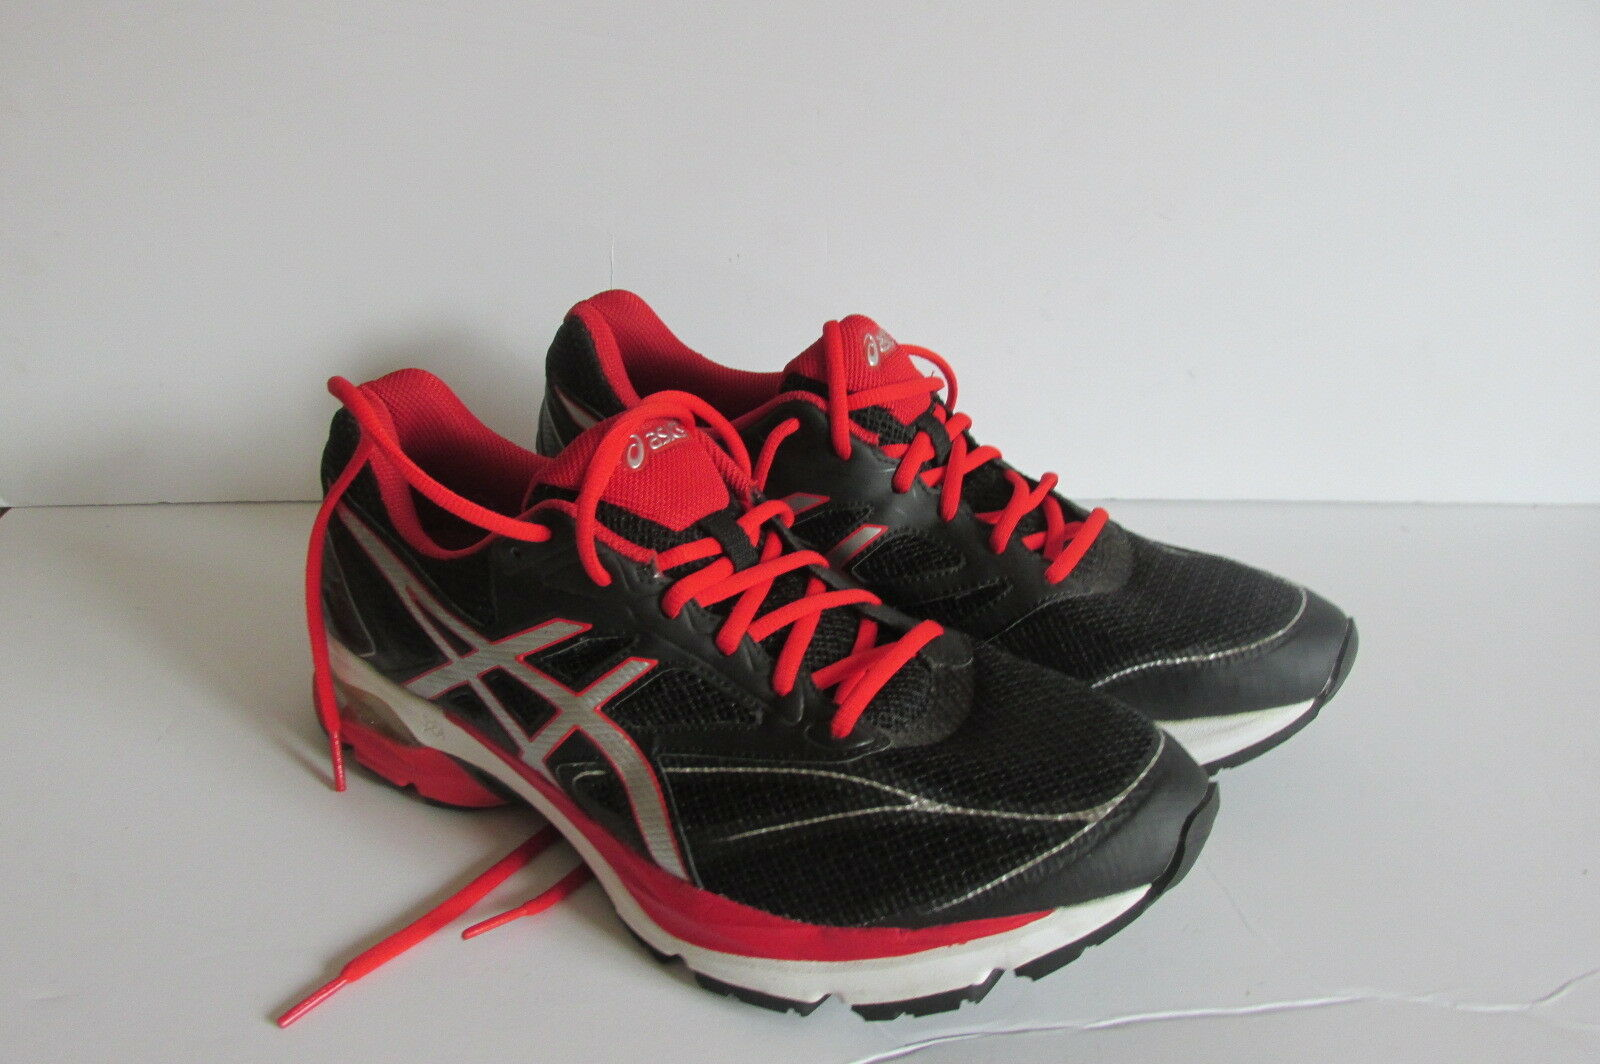 Asics Gel Pulse Para Hombres Zapatos Tenis Correr Fit T6E1N Talla 11.5